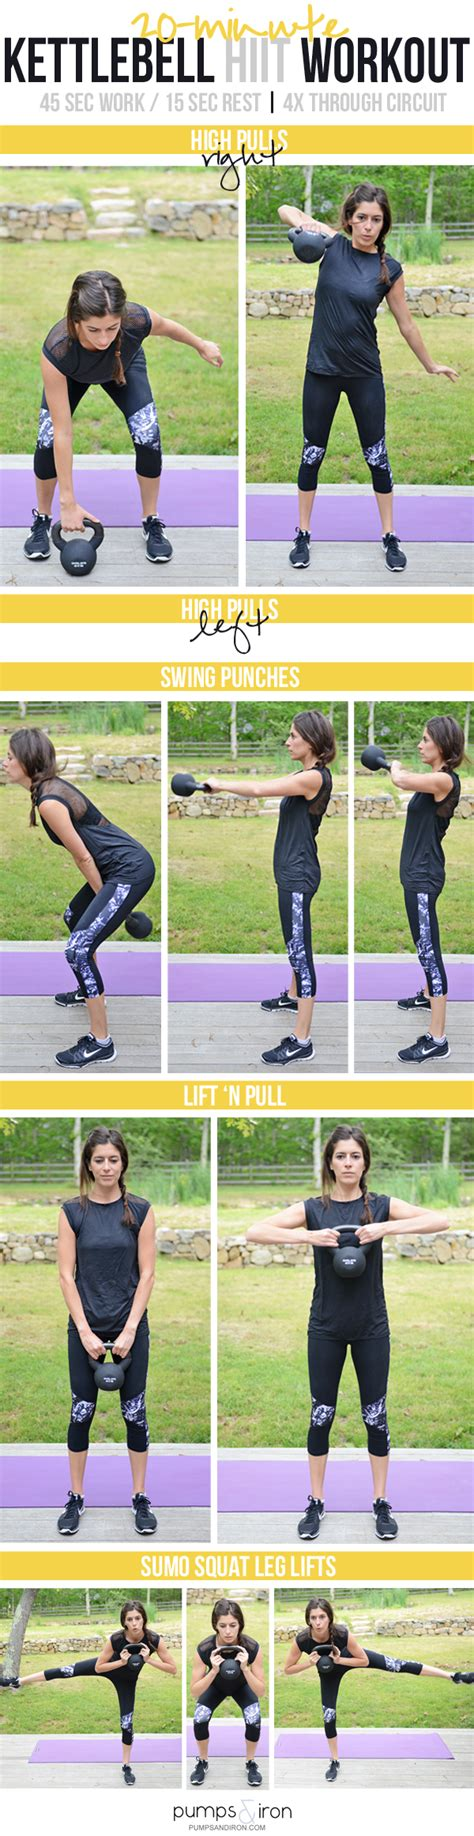 kettlebell workout hiit resistance warm band training bell kettle body minute workouts weight walking fat circuit program upper fitness lats